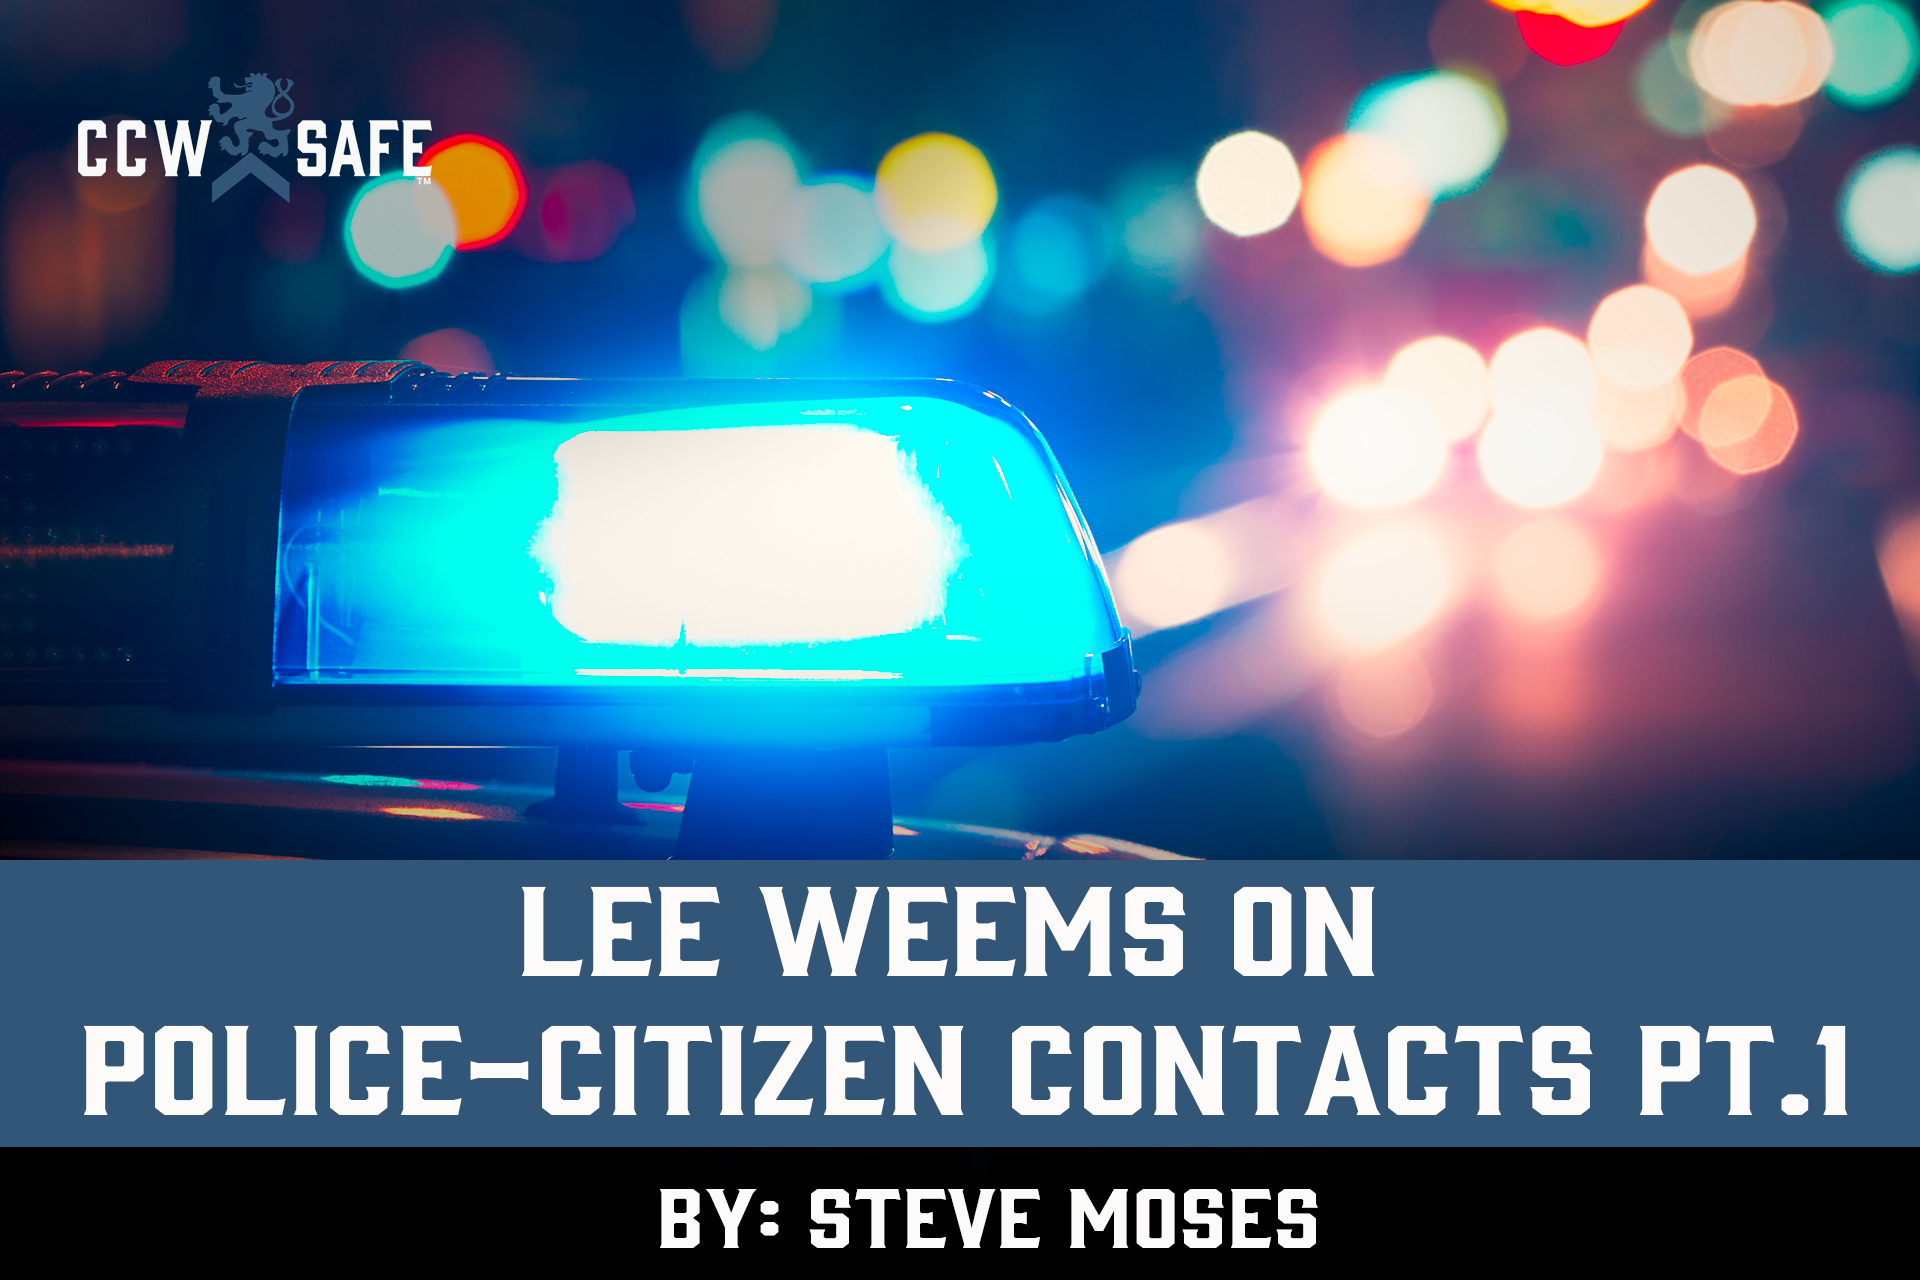 LEE WEEMS ON POLICE-CITIZEN CONTACTS PT.1